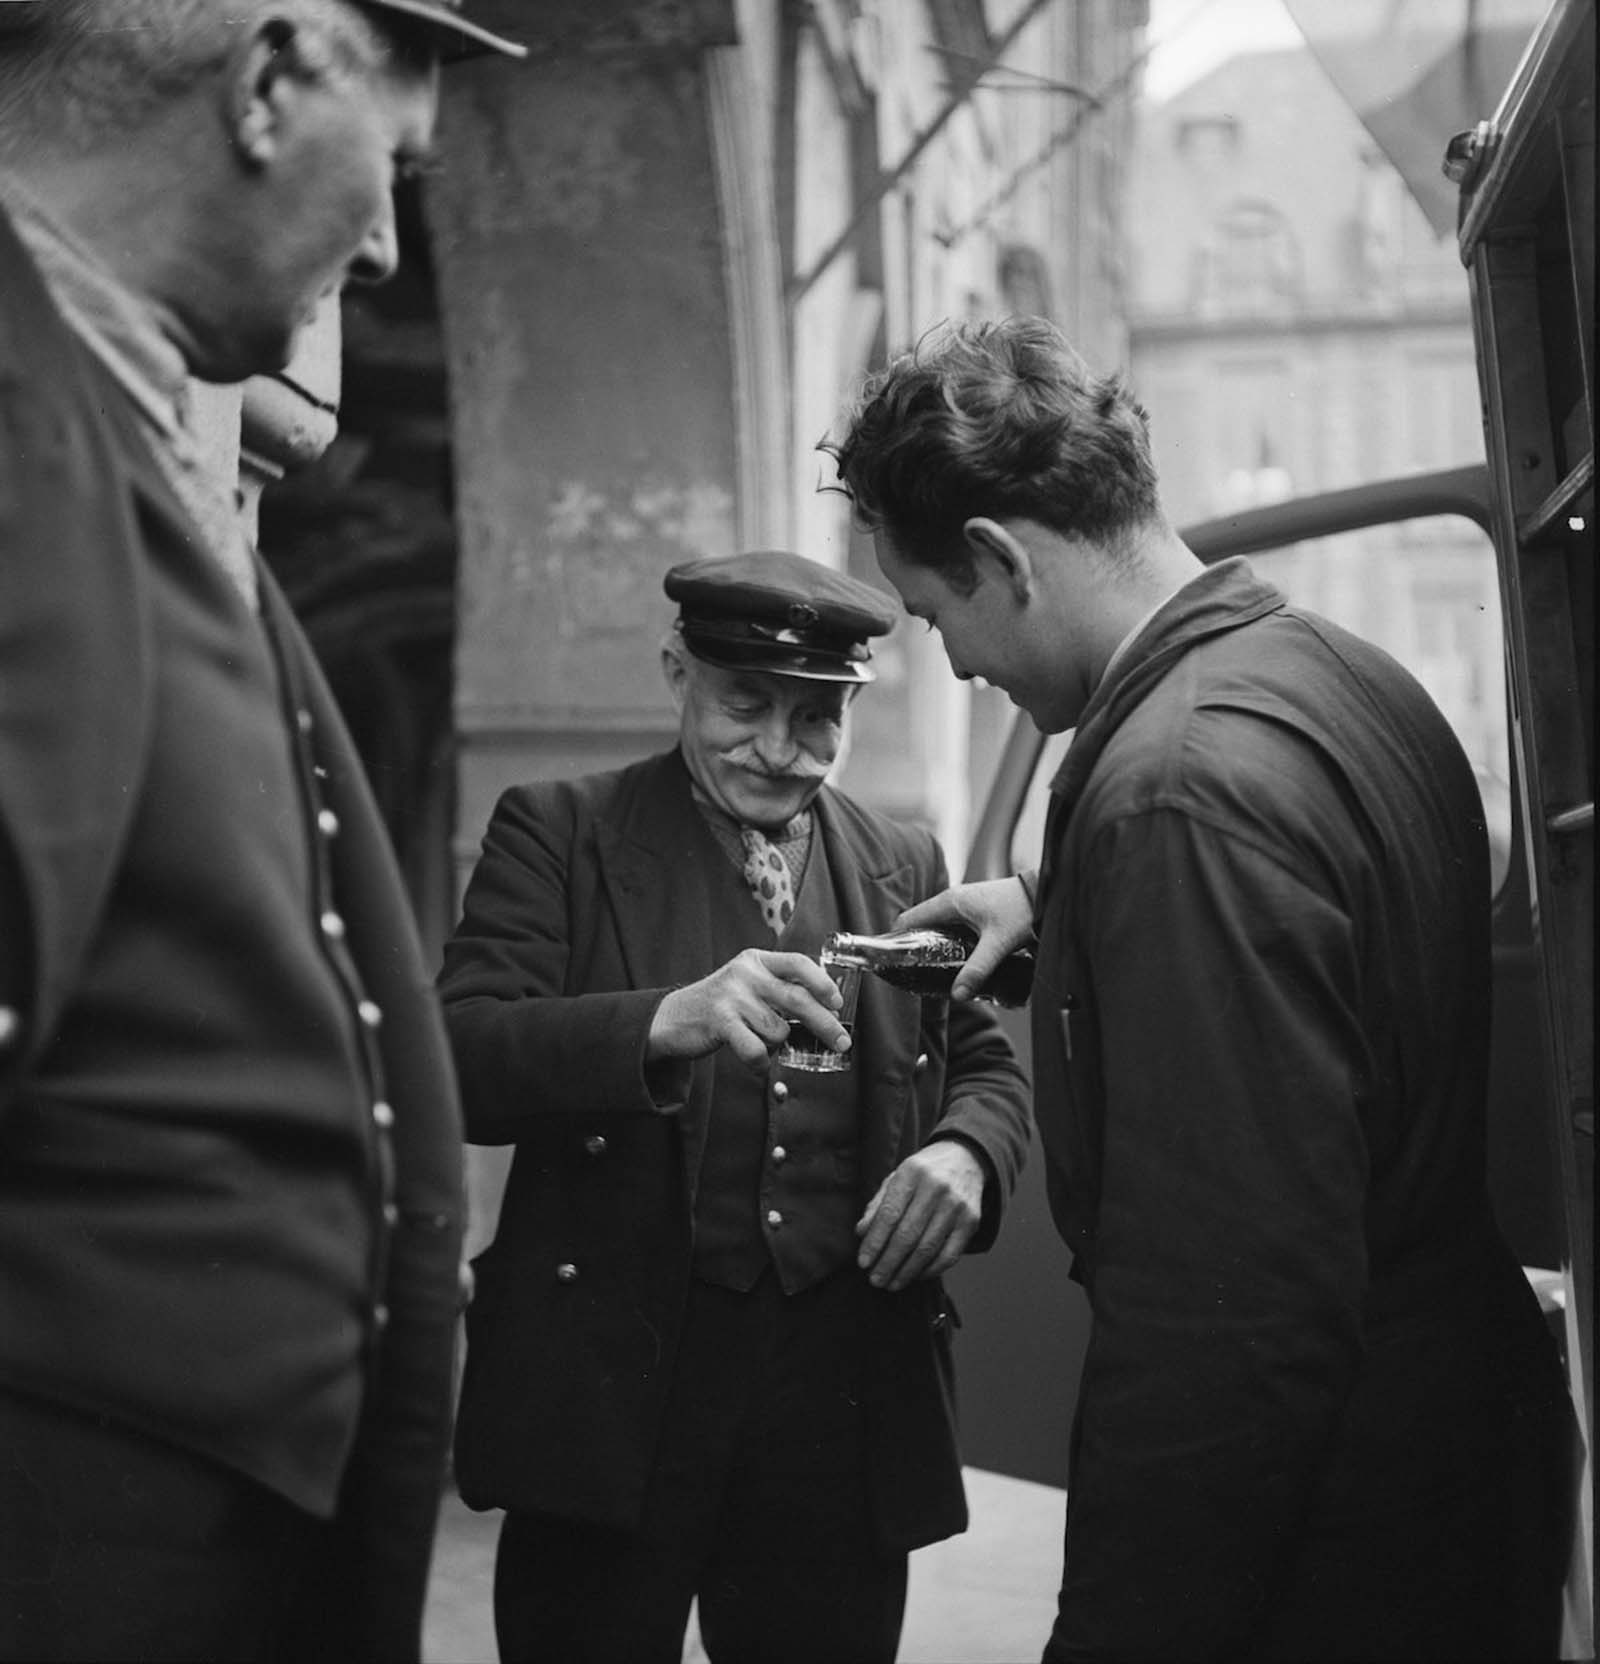 A bystander watches as a man pours a bottle of Coca-Cola into a glass held by a smiling, elderly man, in Paris, France.